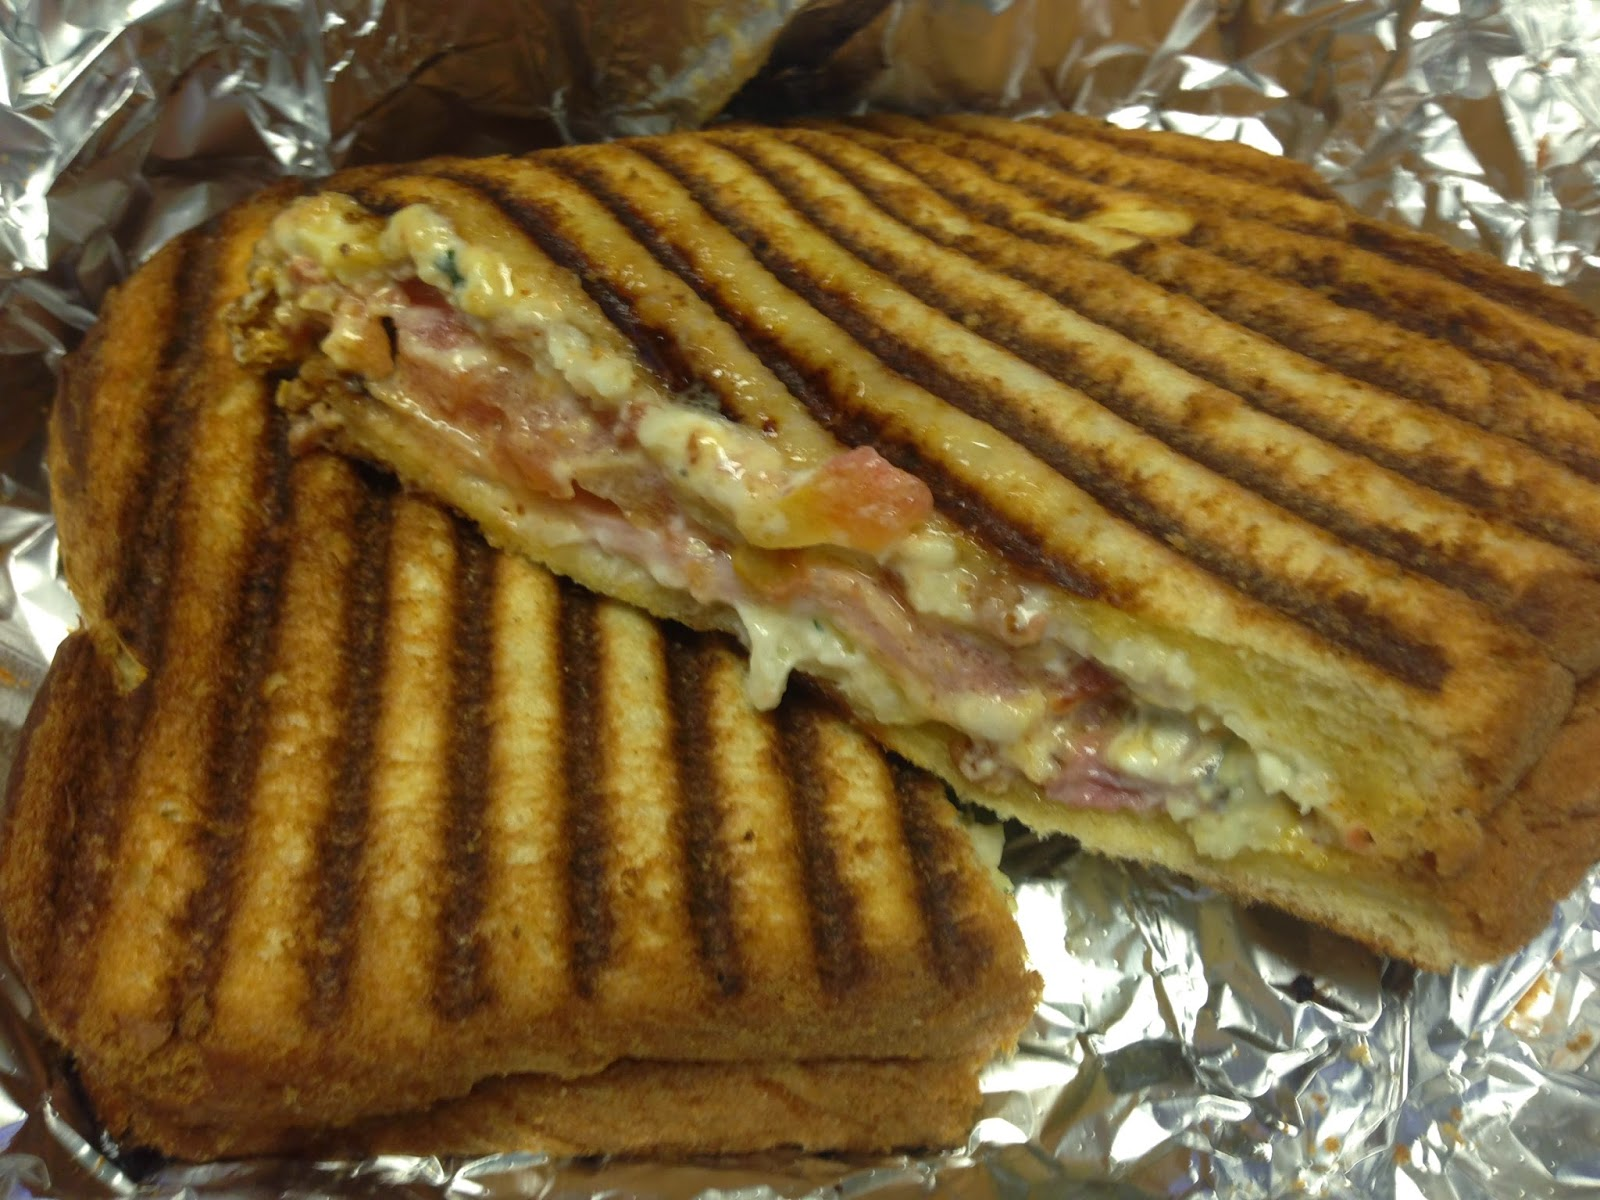 Cheezy Rider Food Truck - The Copper Penny, grilled Challah, cheese, ham, bacon, tomatoes, and chipotle honey mustard